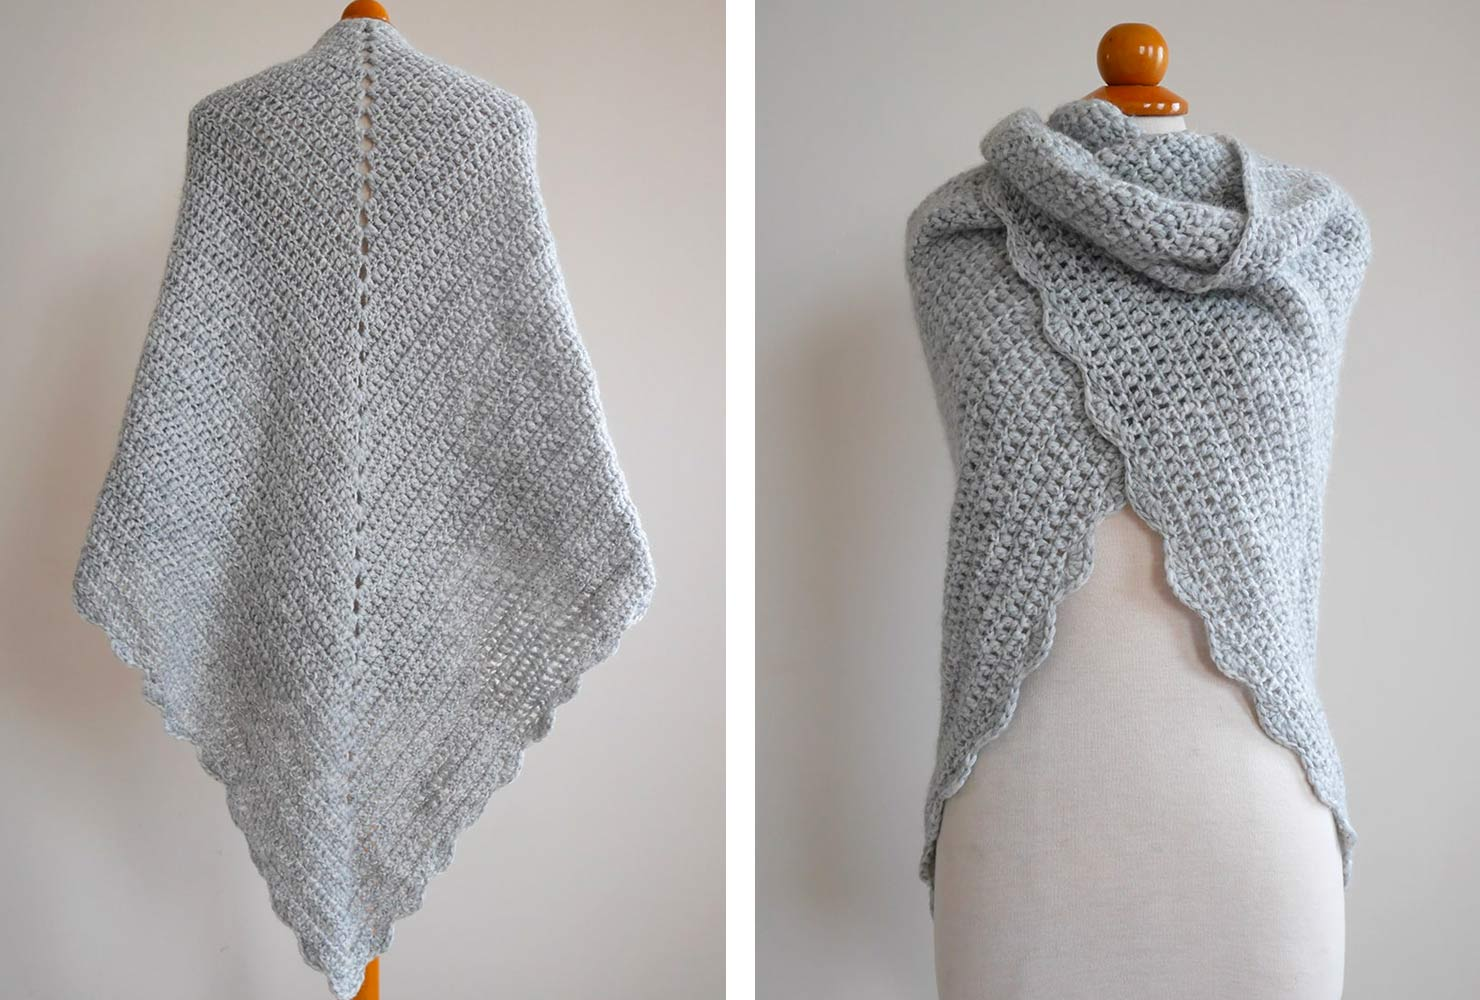 Knitted gray shawl.